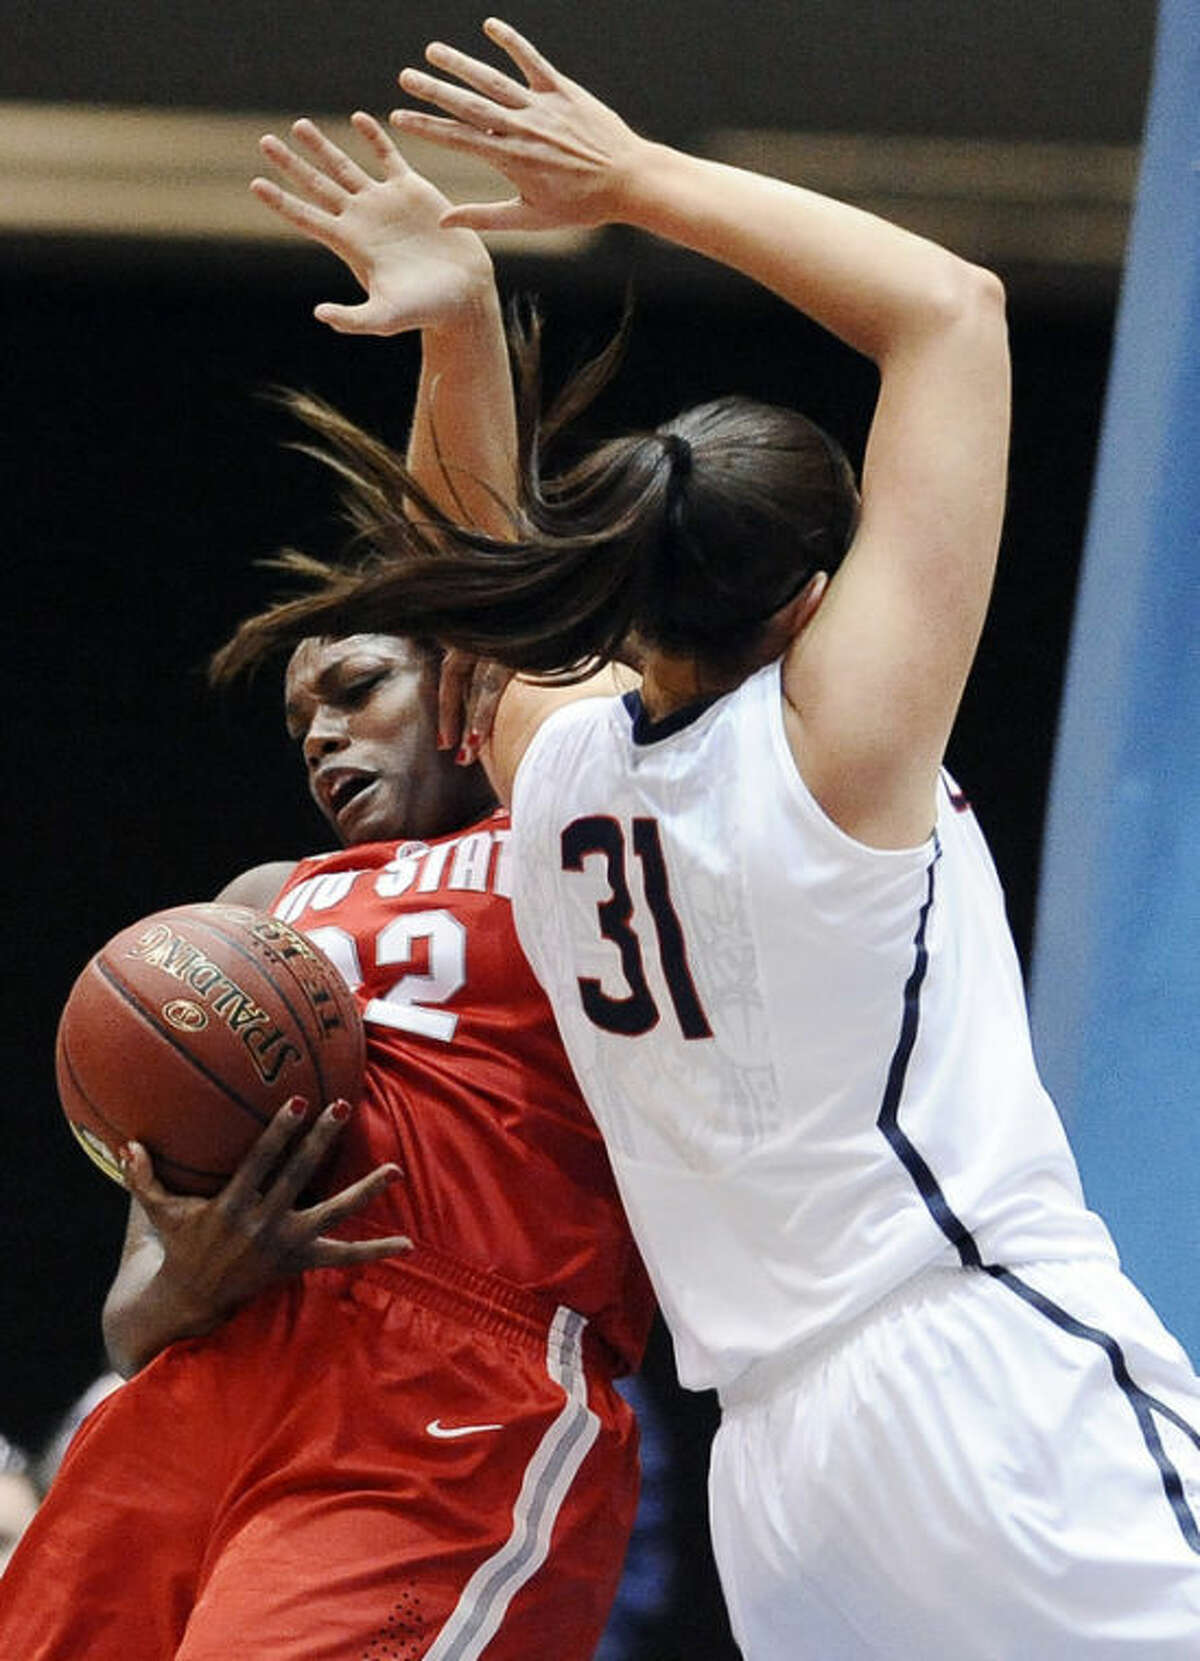 Ohio State's Darryce Moore, left, tangles with Connecticut's Stefanie Dolson, right, as they battle for a rebound during the first half of an NCAA college basketball game Sunday, Dec. 1, 2013, in Springfield, Mass. (AP Photo/Jessica Hill)